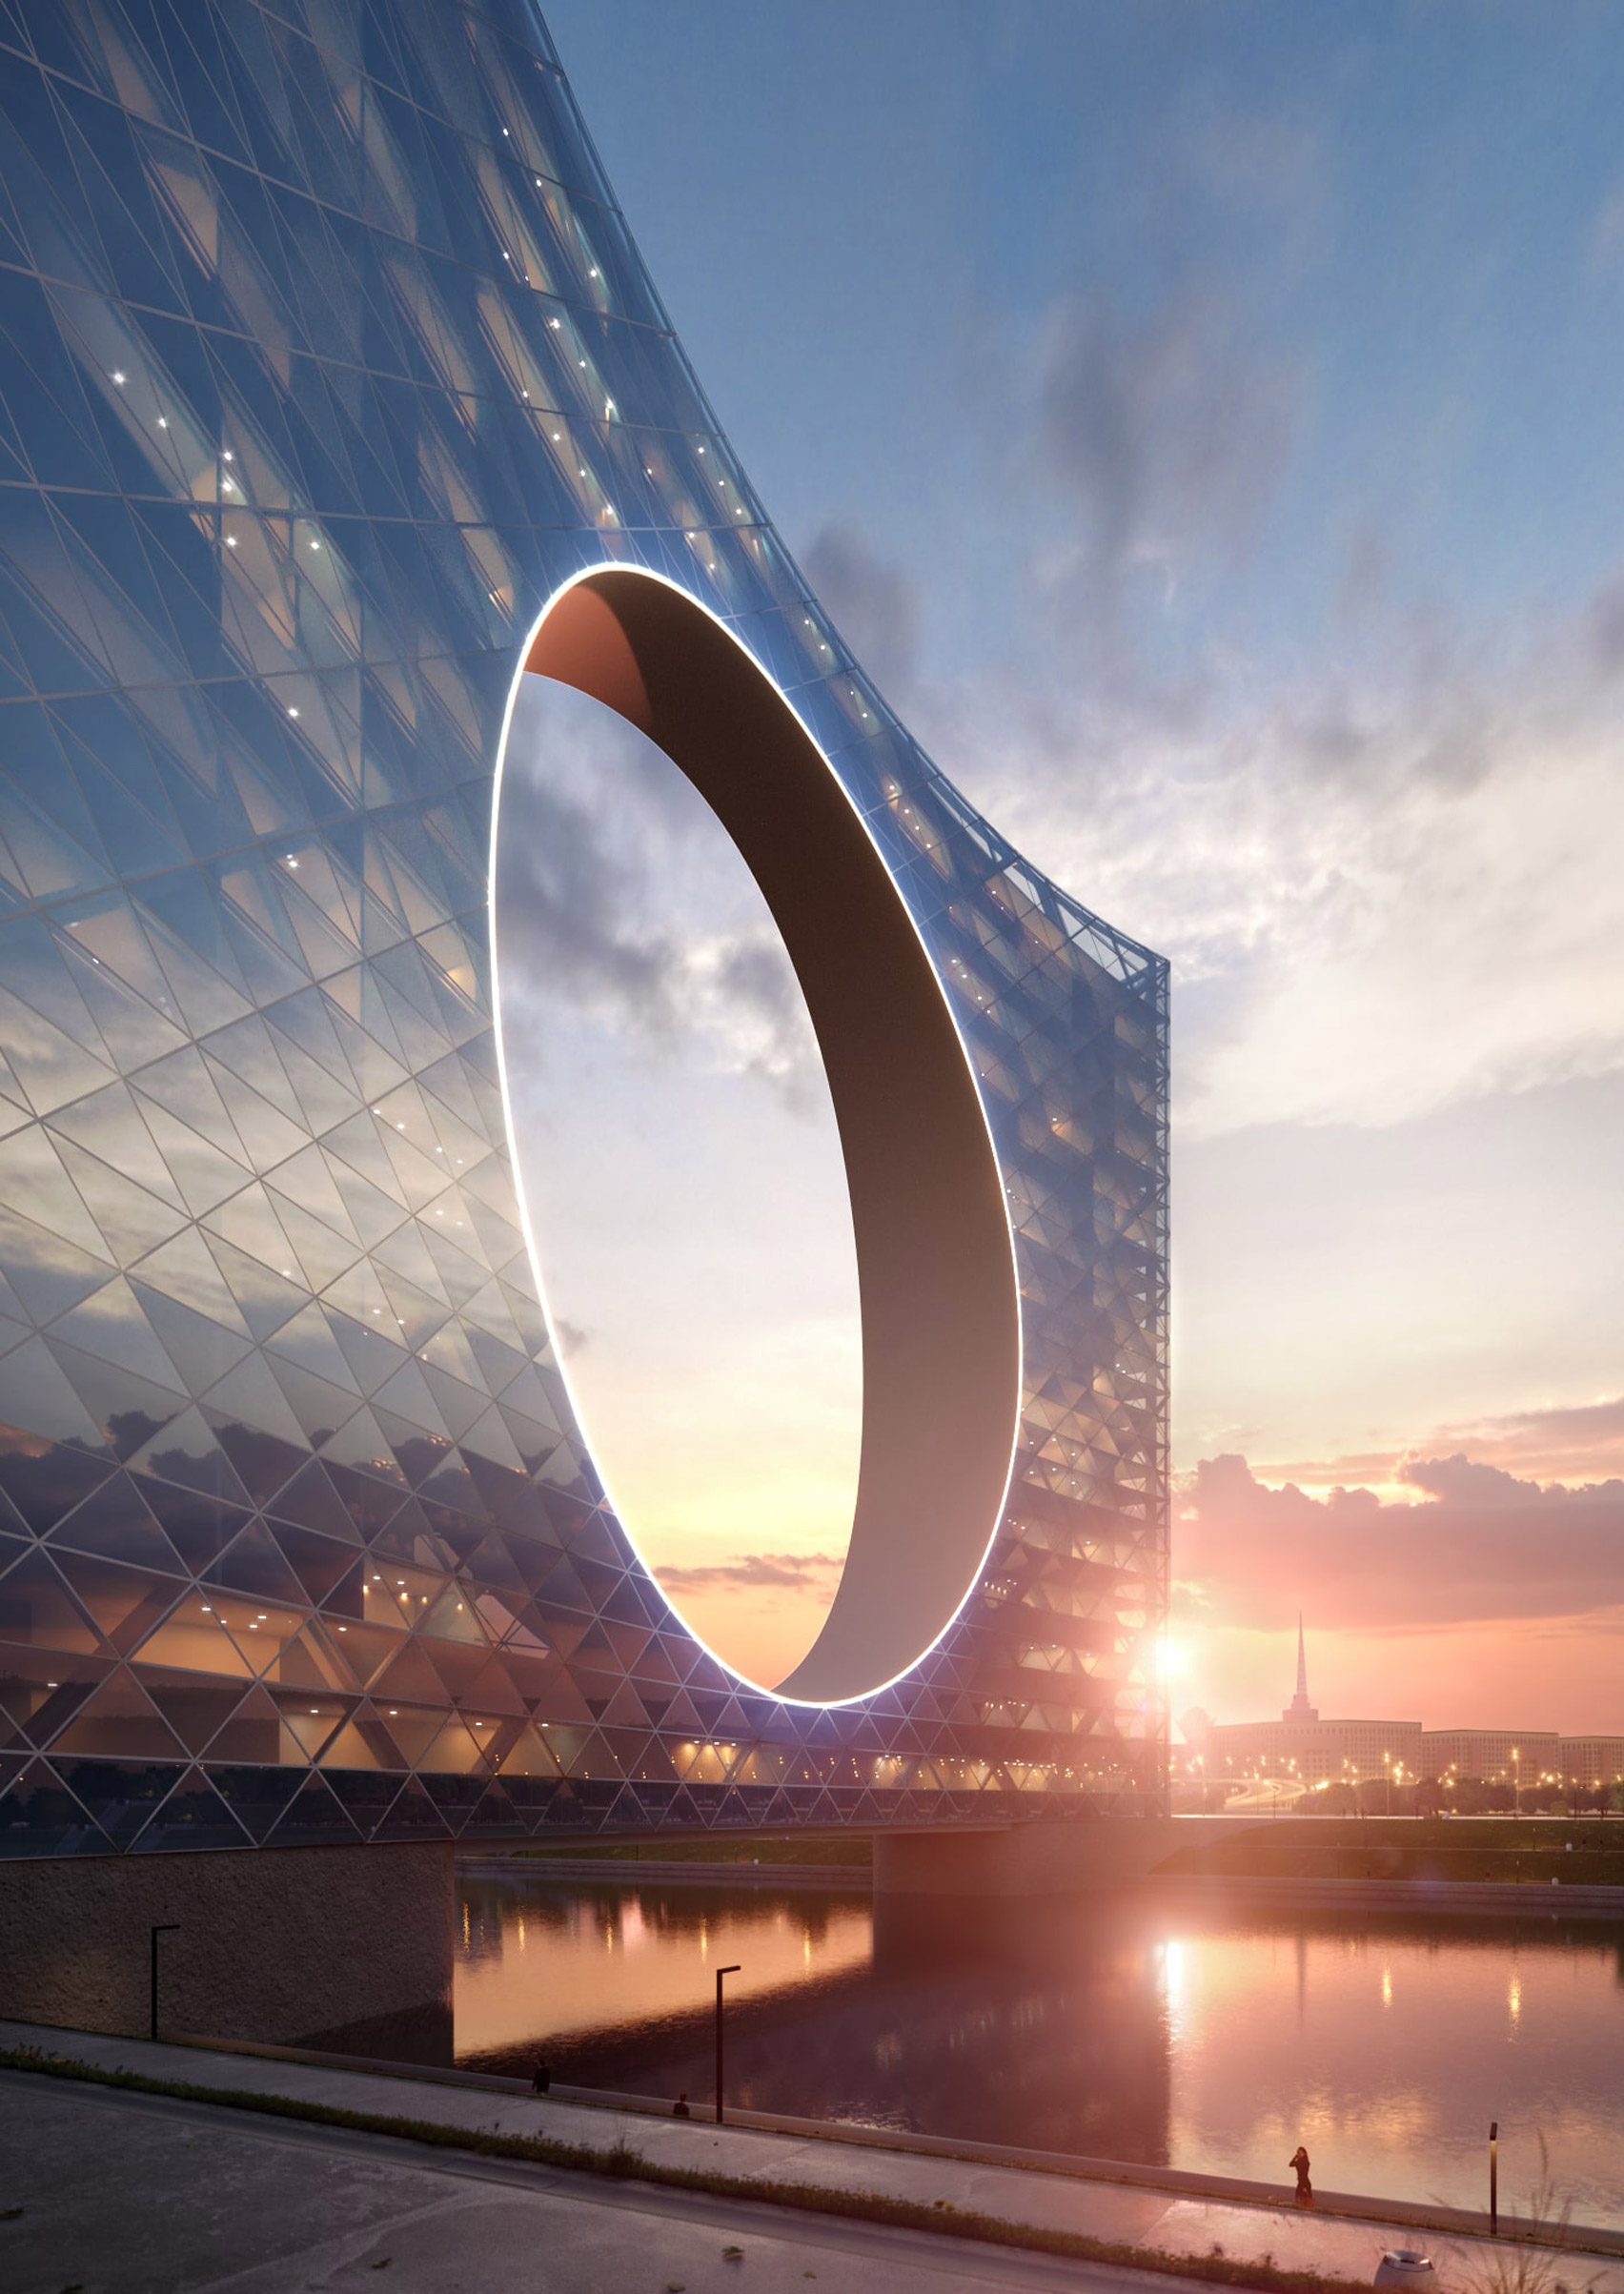 fundamental-architects-omega-render-astana-kazakhstan-flag_dezeen_1704_col_0